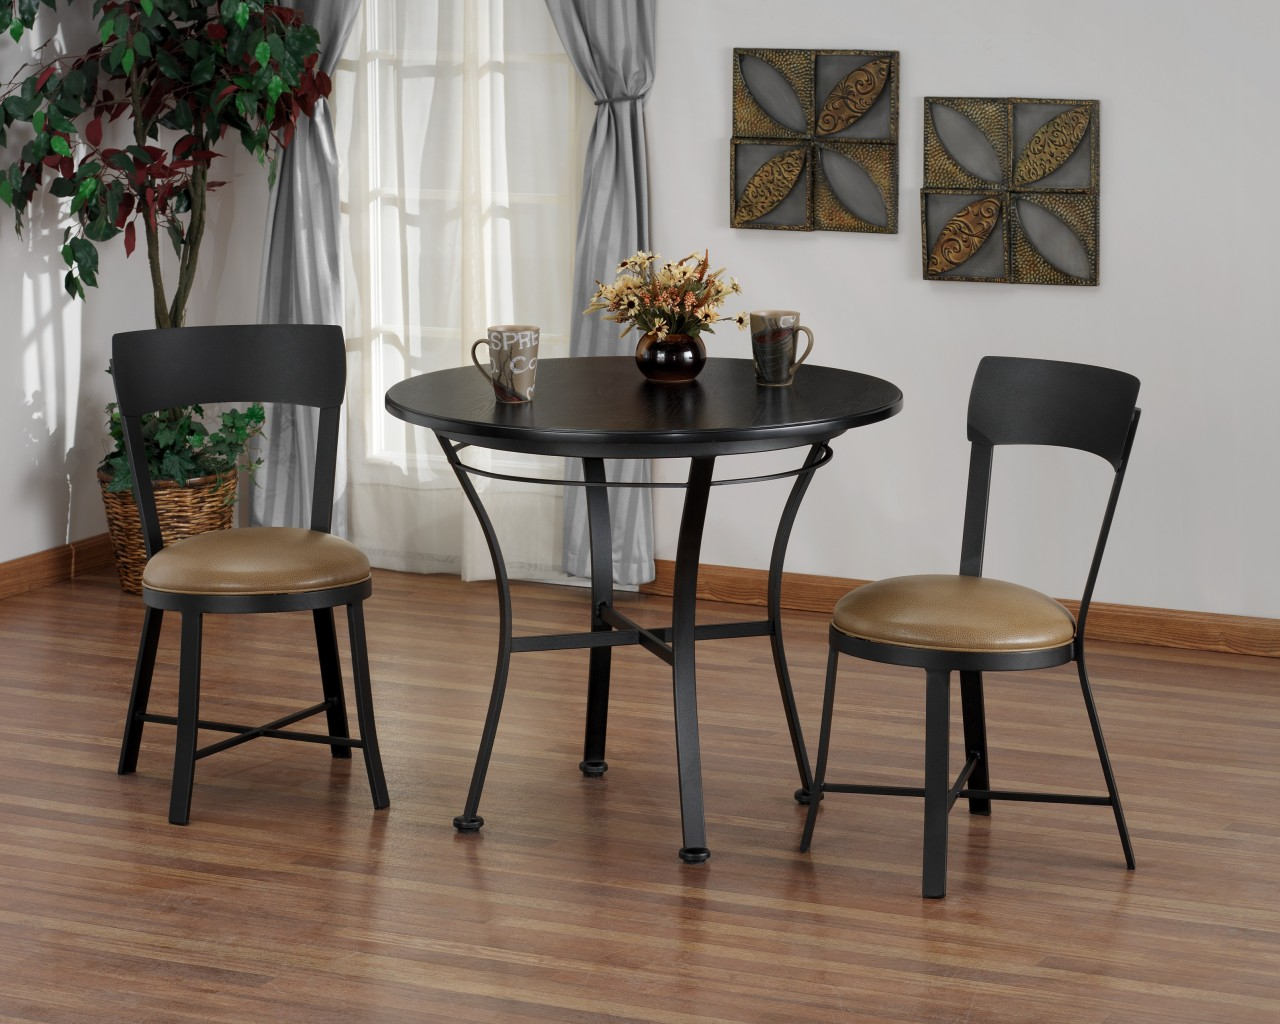 Images of Image of: Kitchen Bistro Set bistro sets for kitchen